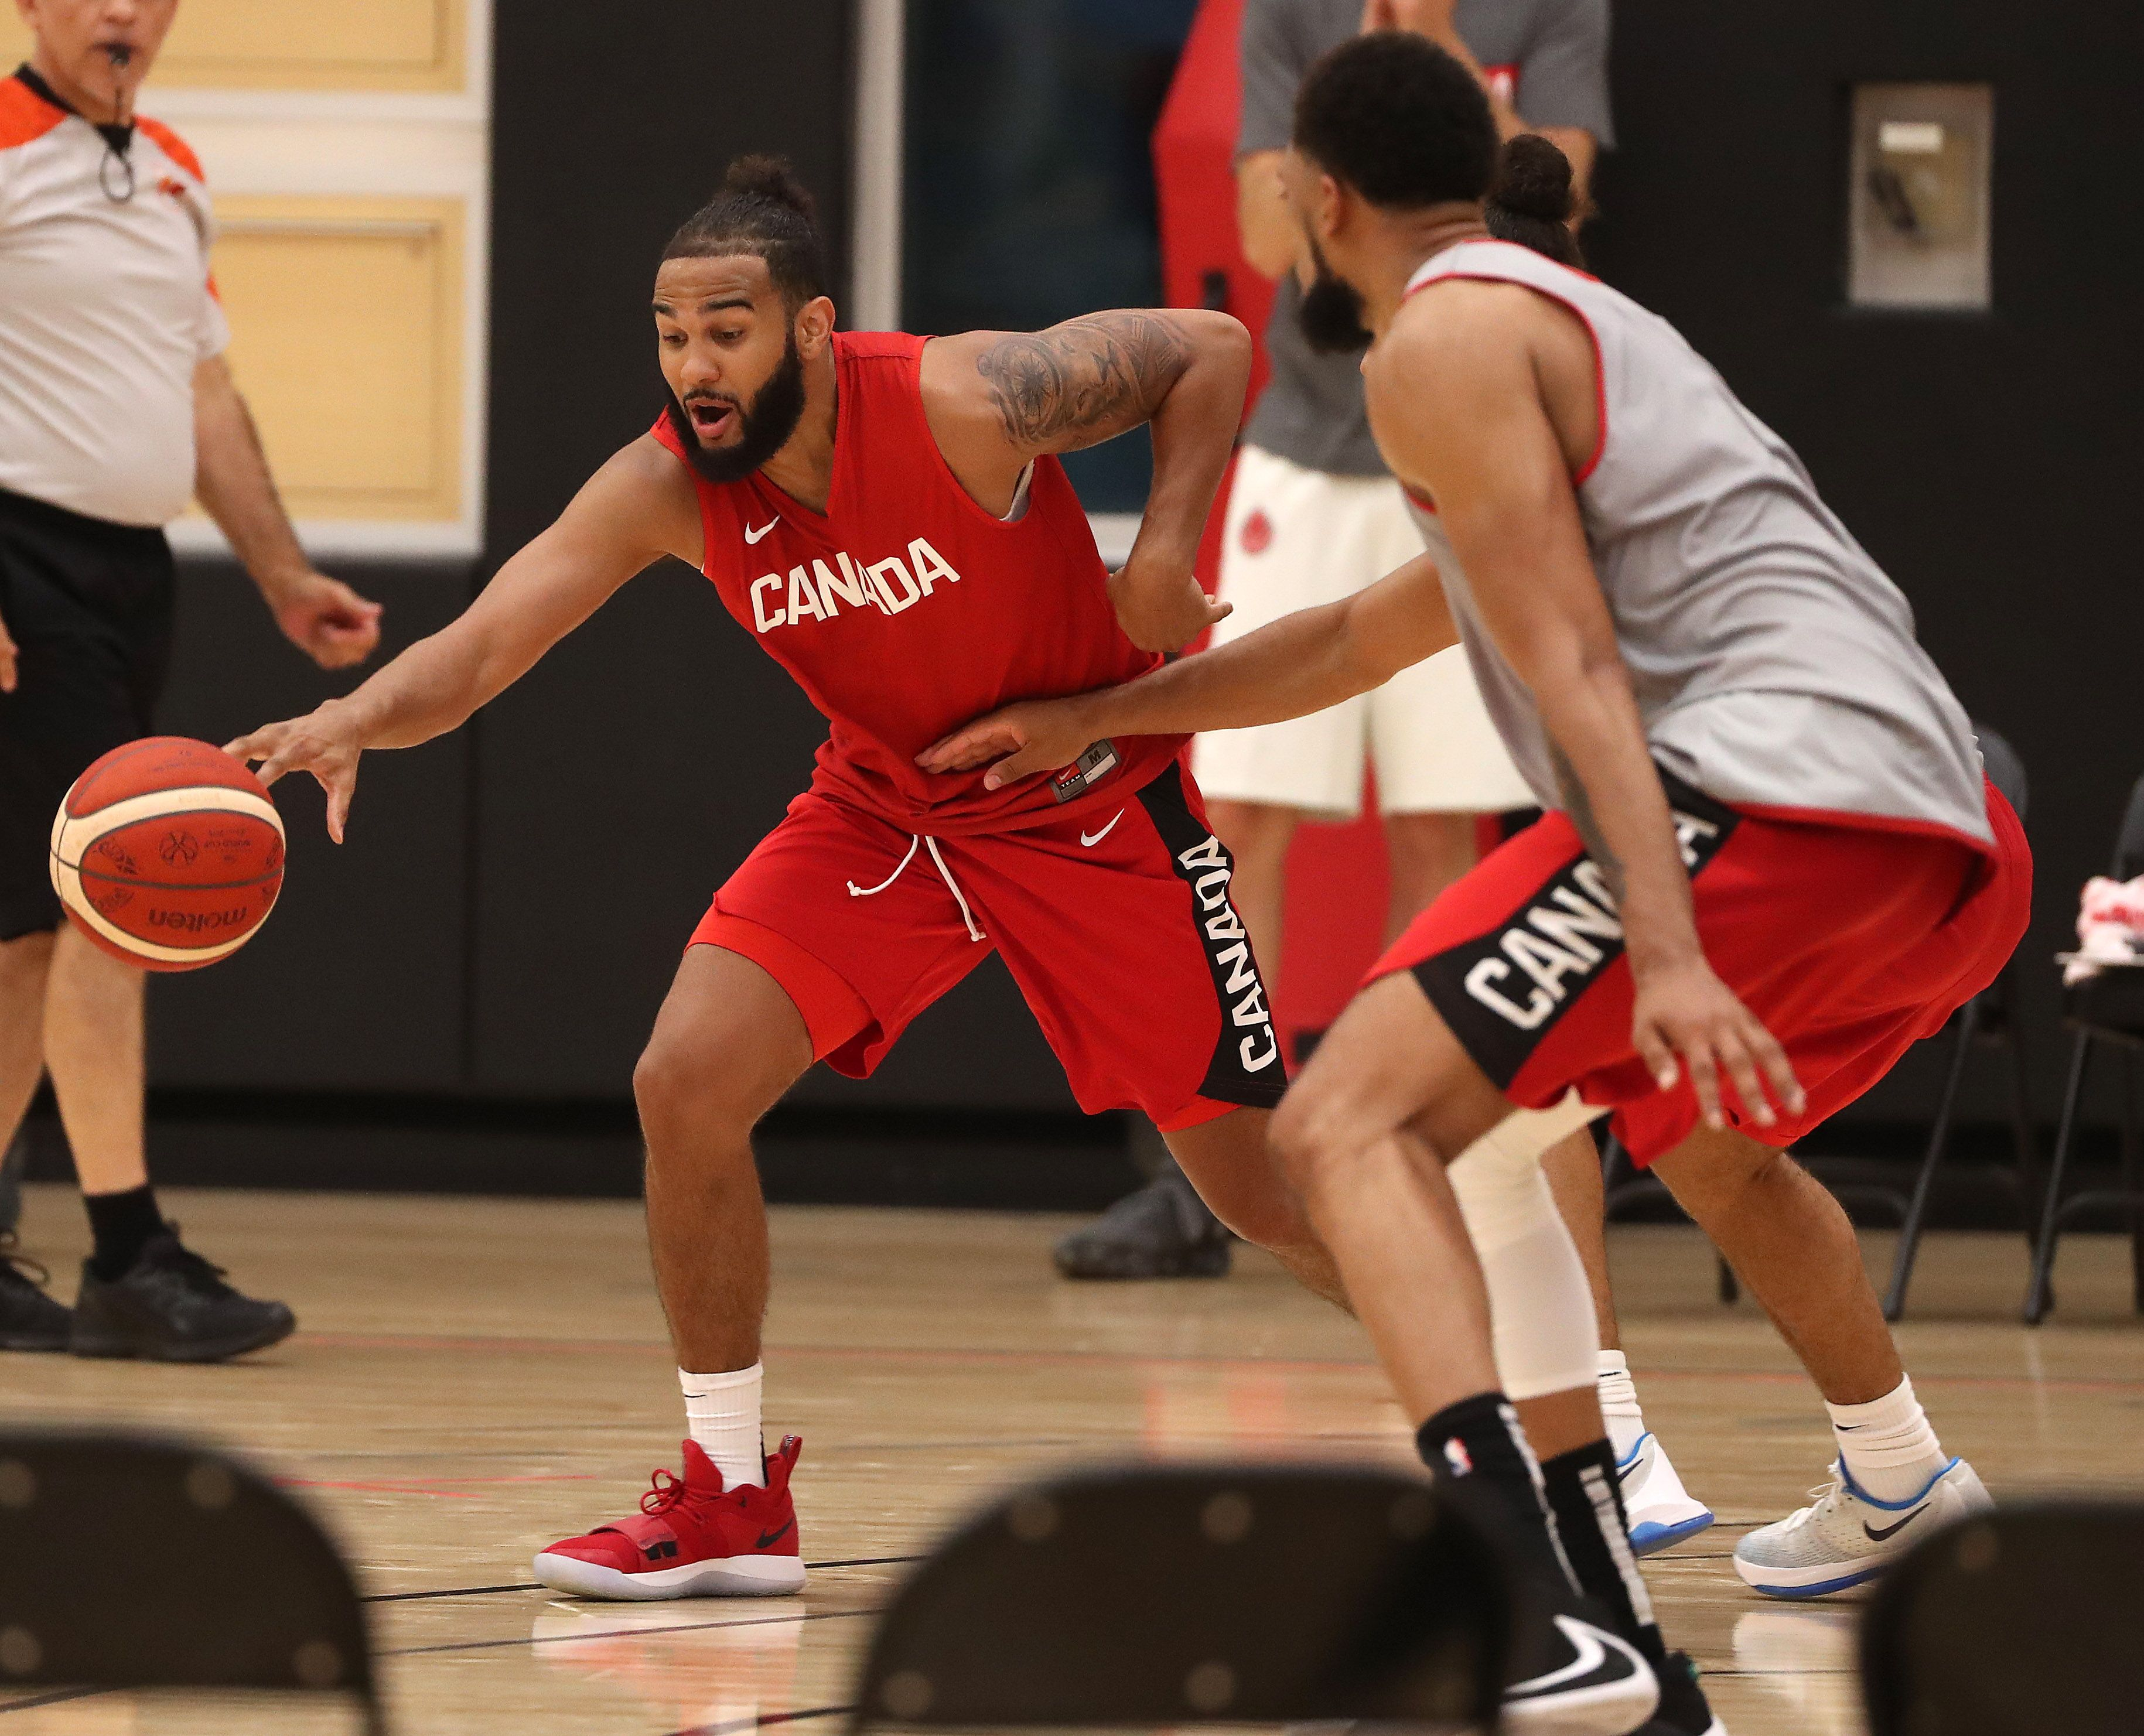 Report: Cory Joseph withdraws from repping Canada at FIBA World Cup